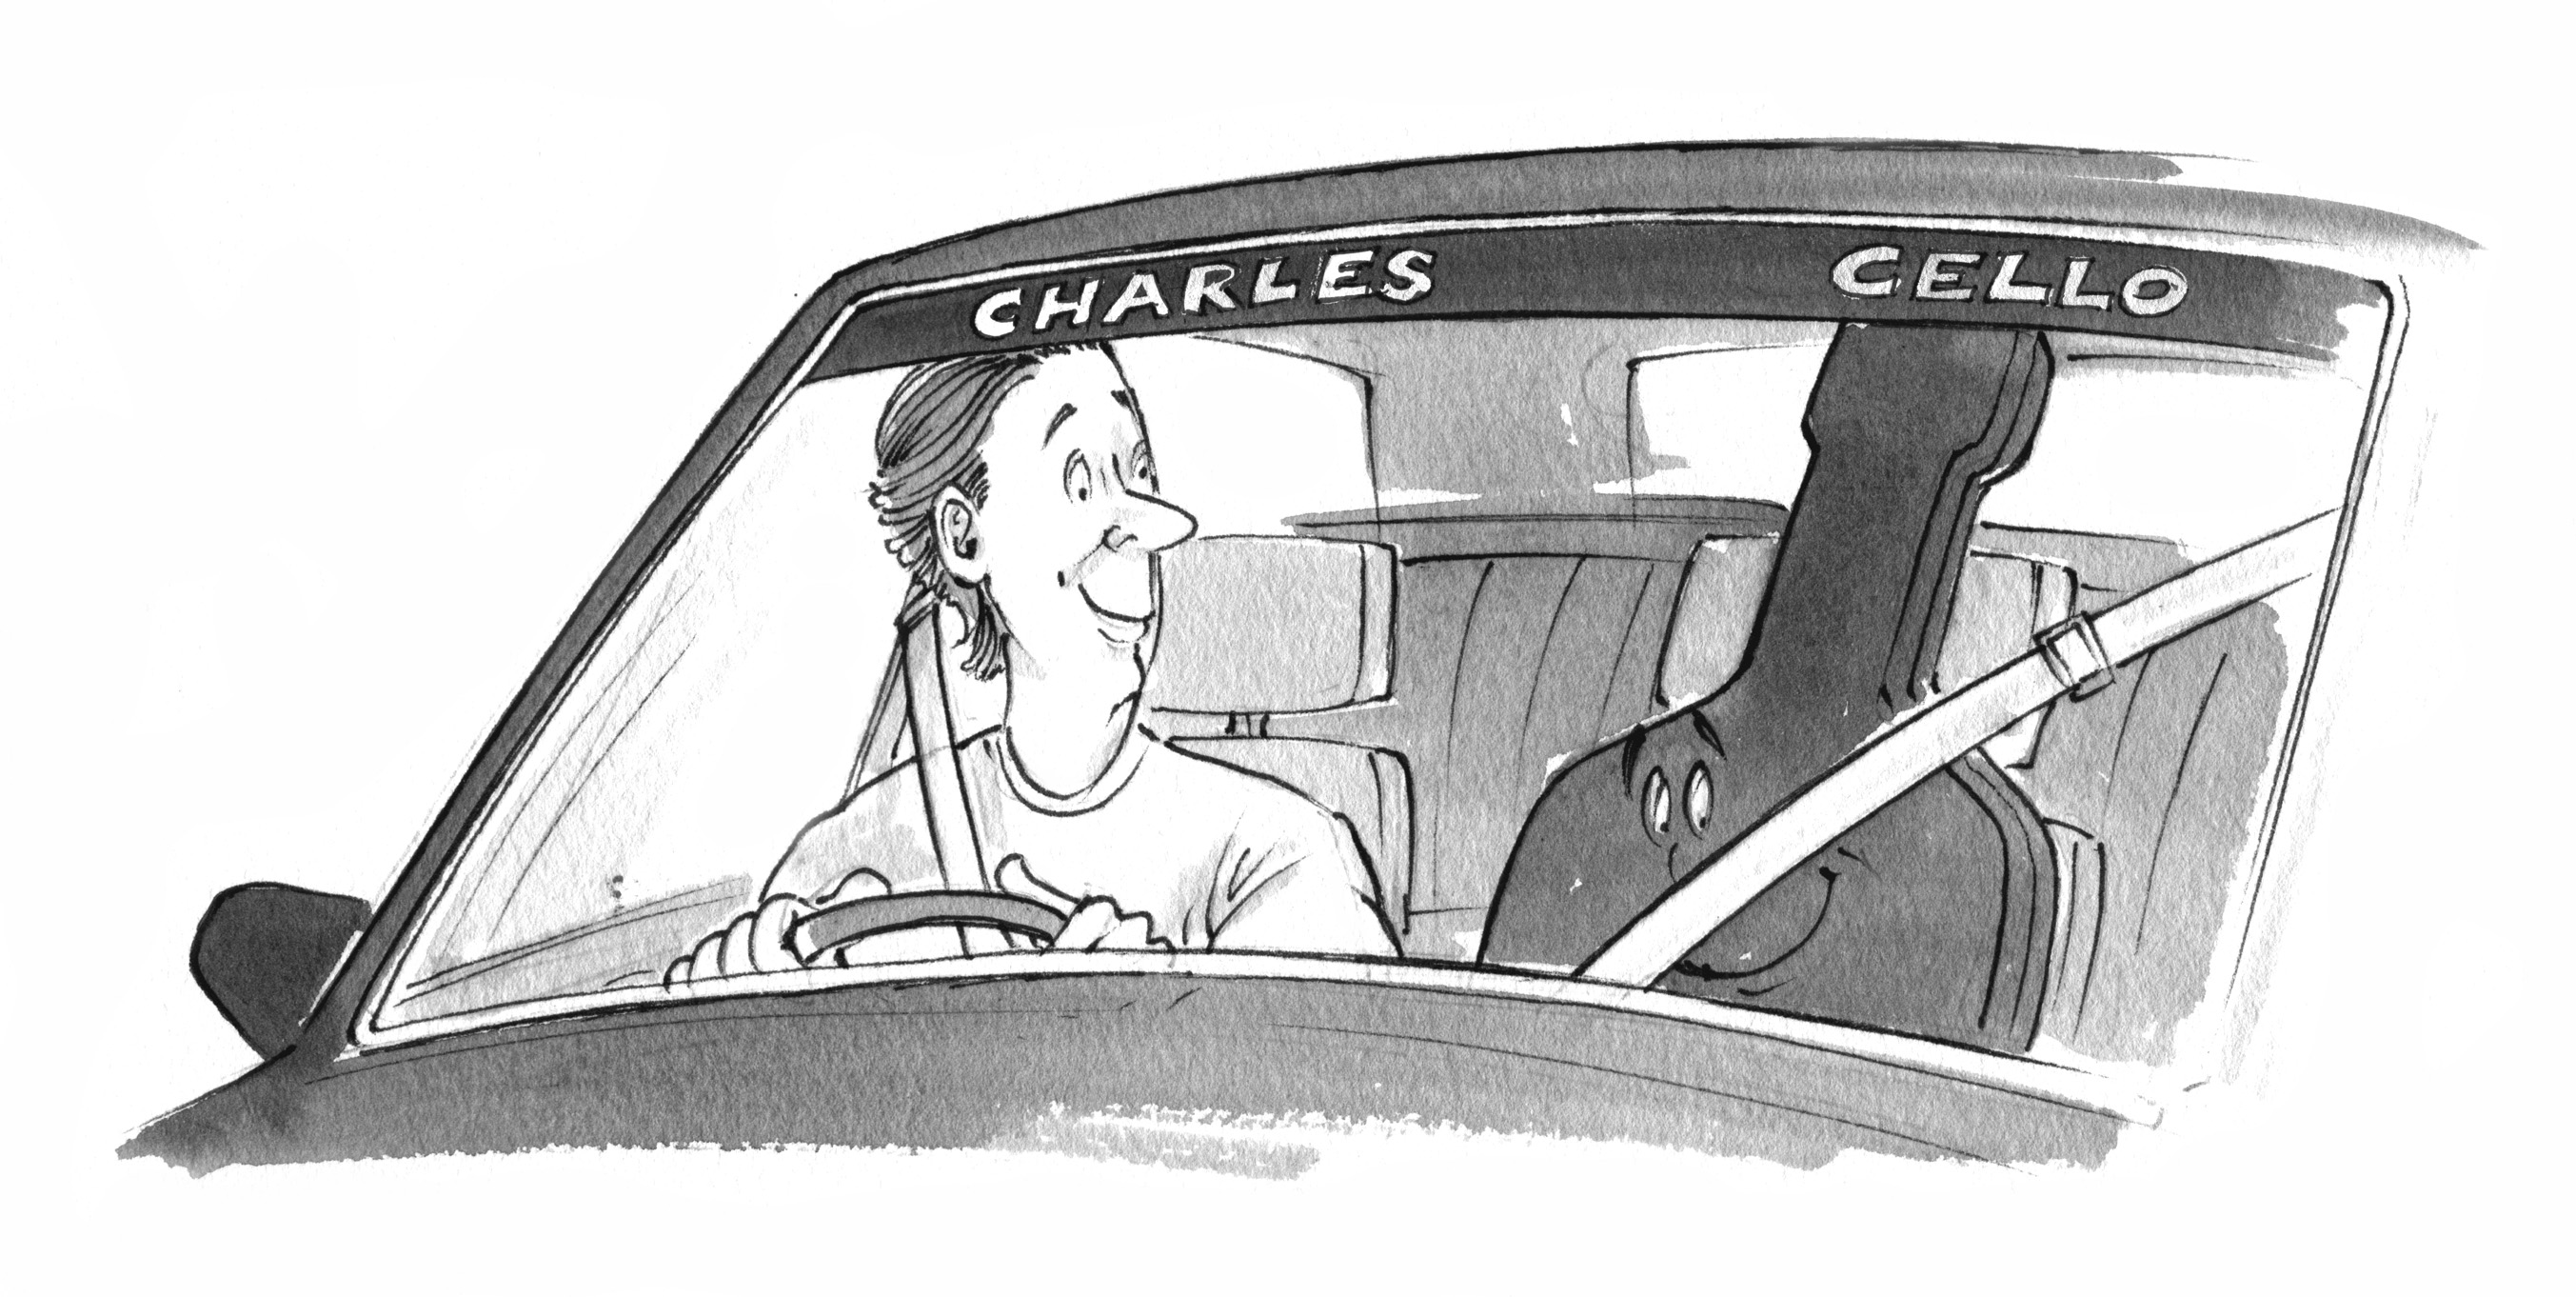 Cartoon of a man driving a car with a cello strapped into the passenger seat